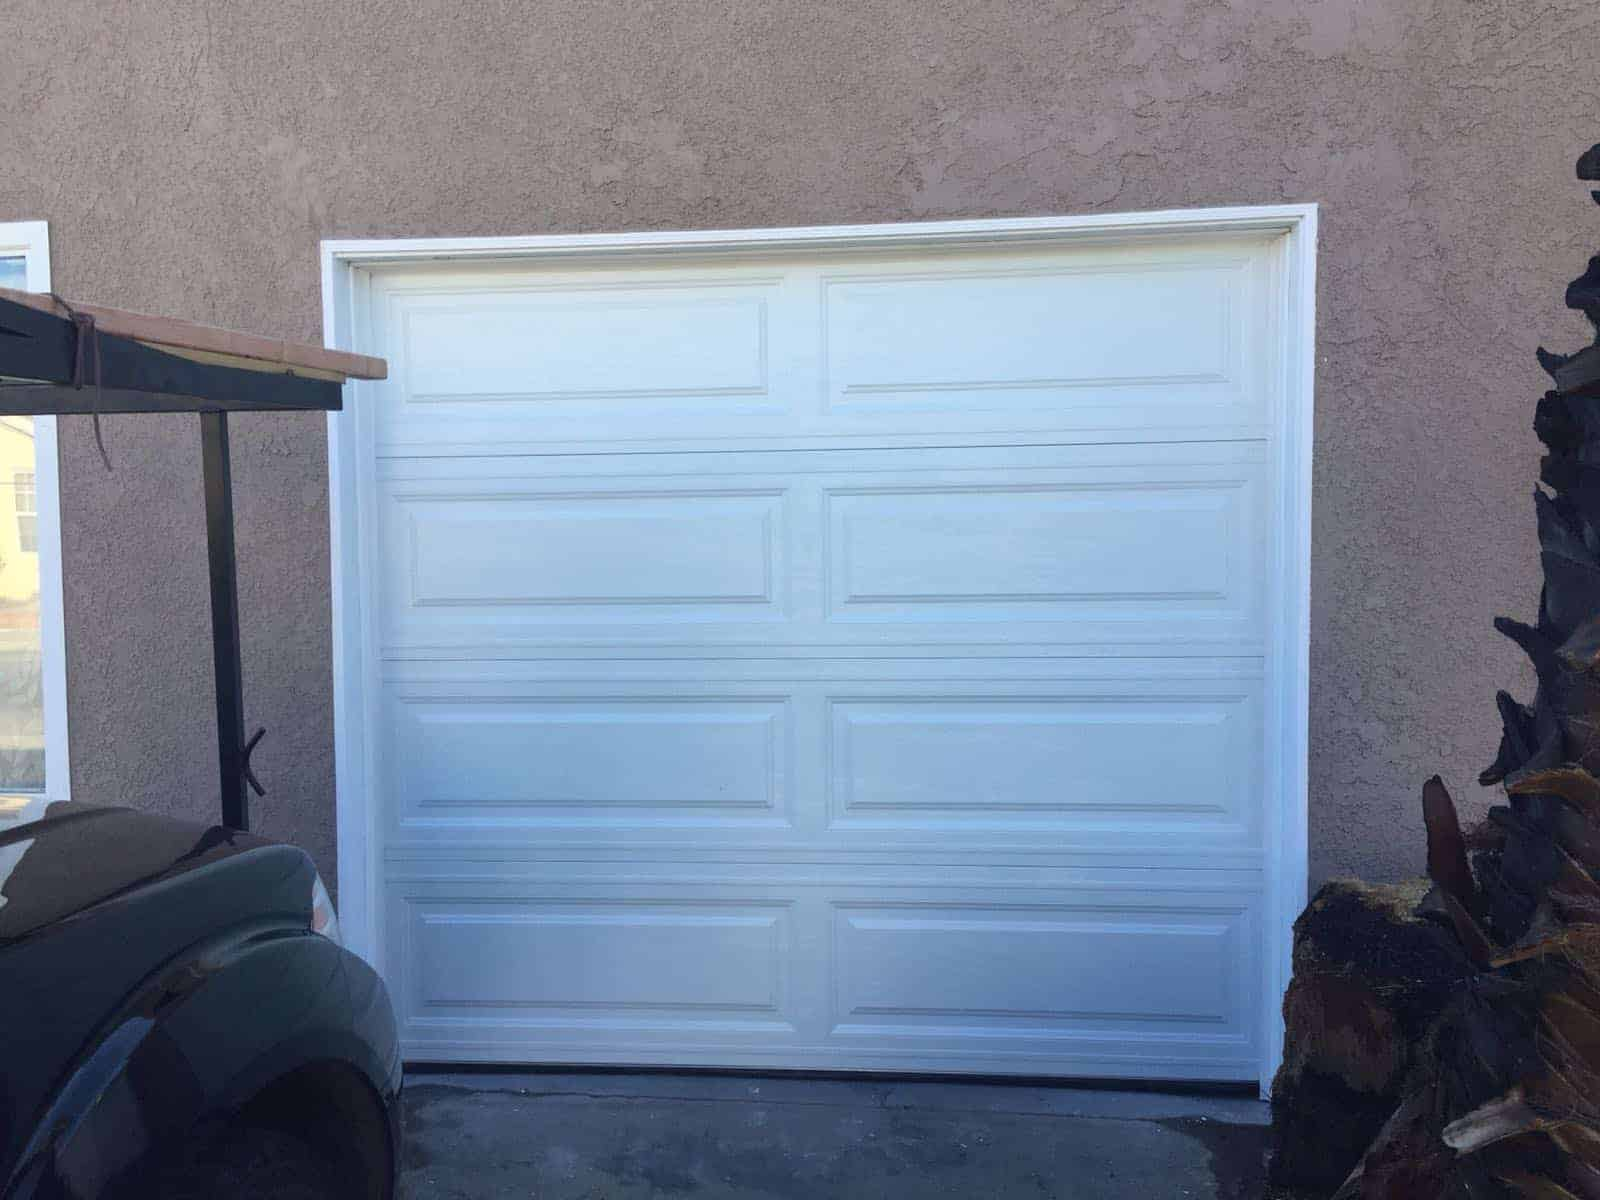 Park City Utah Gate & Garage Door Repair